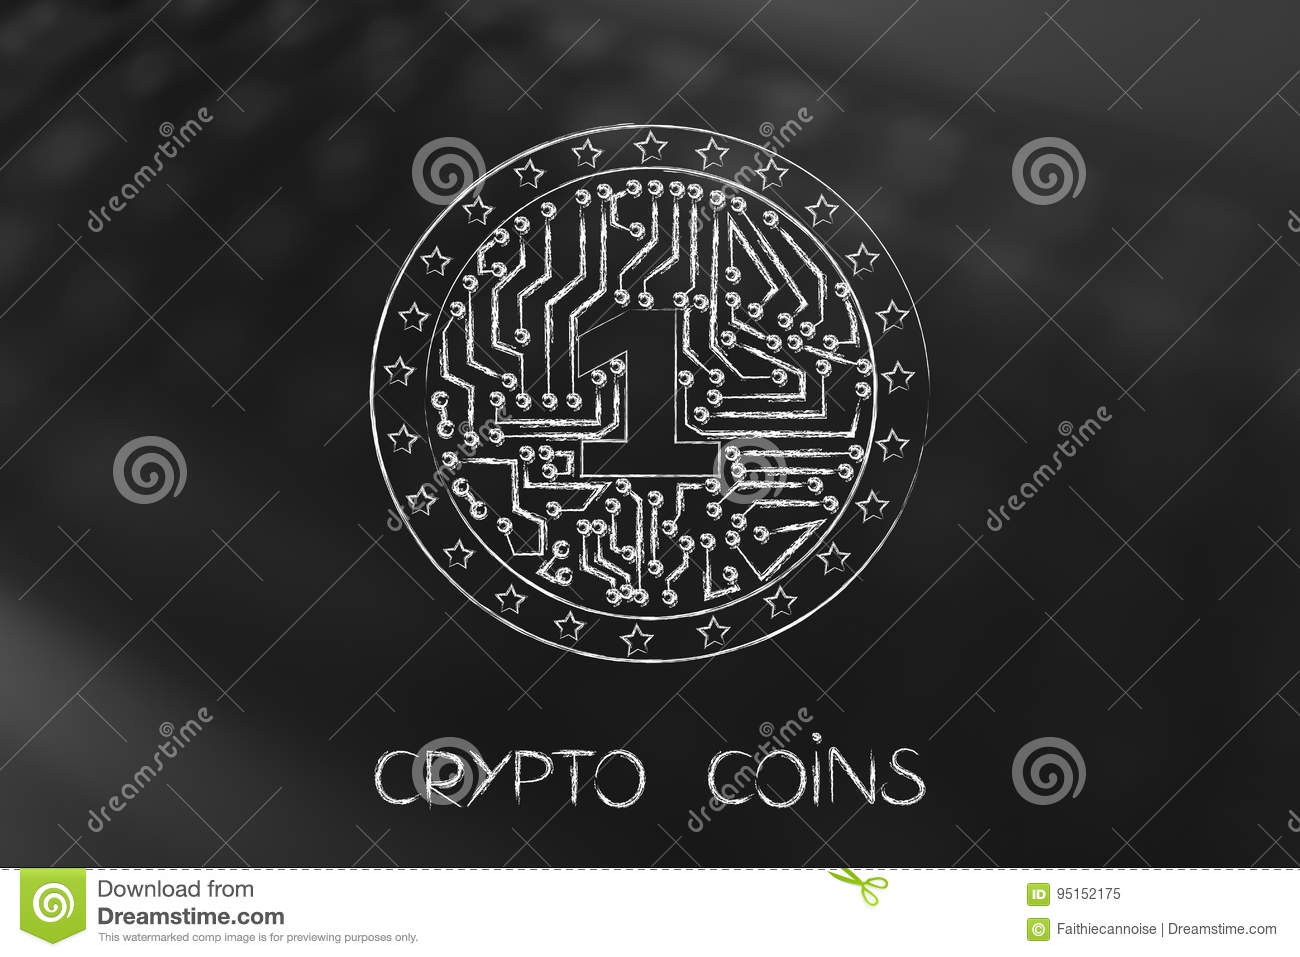 Coin Electronic Circuits Schematics Wiring Diagrams Toss Circuit Diagram Crypto With Inside Stock Illustration Rh Dreamstime Com Elronic Brands Of Coins